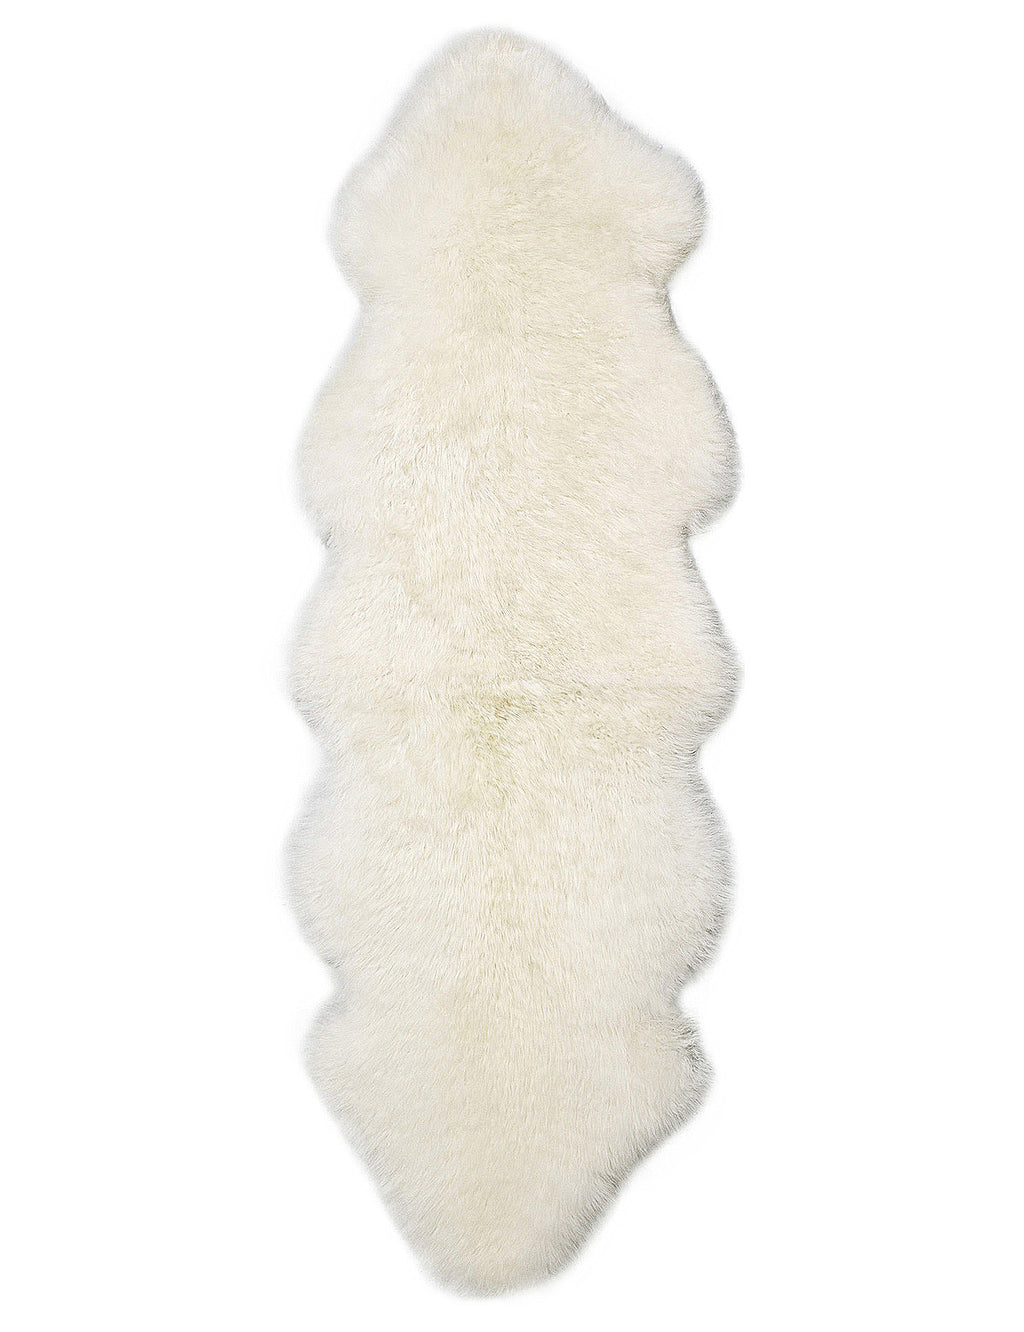 Double Sheepskin Rug (2'x6') - ParkerWool  - 5